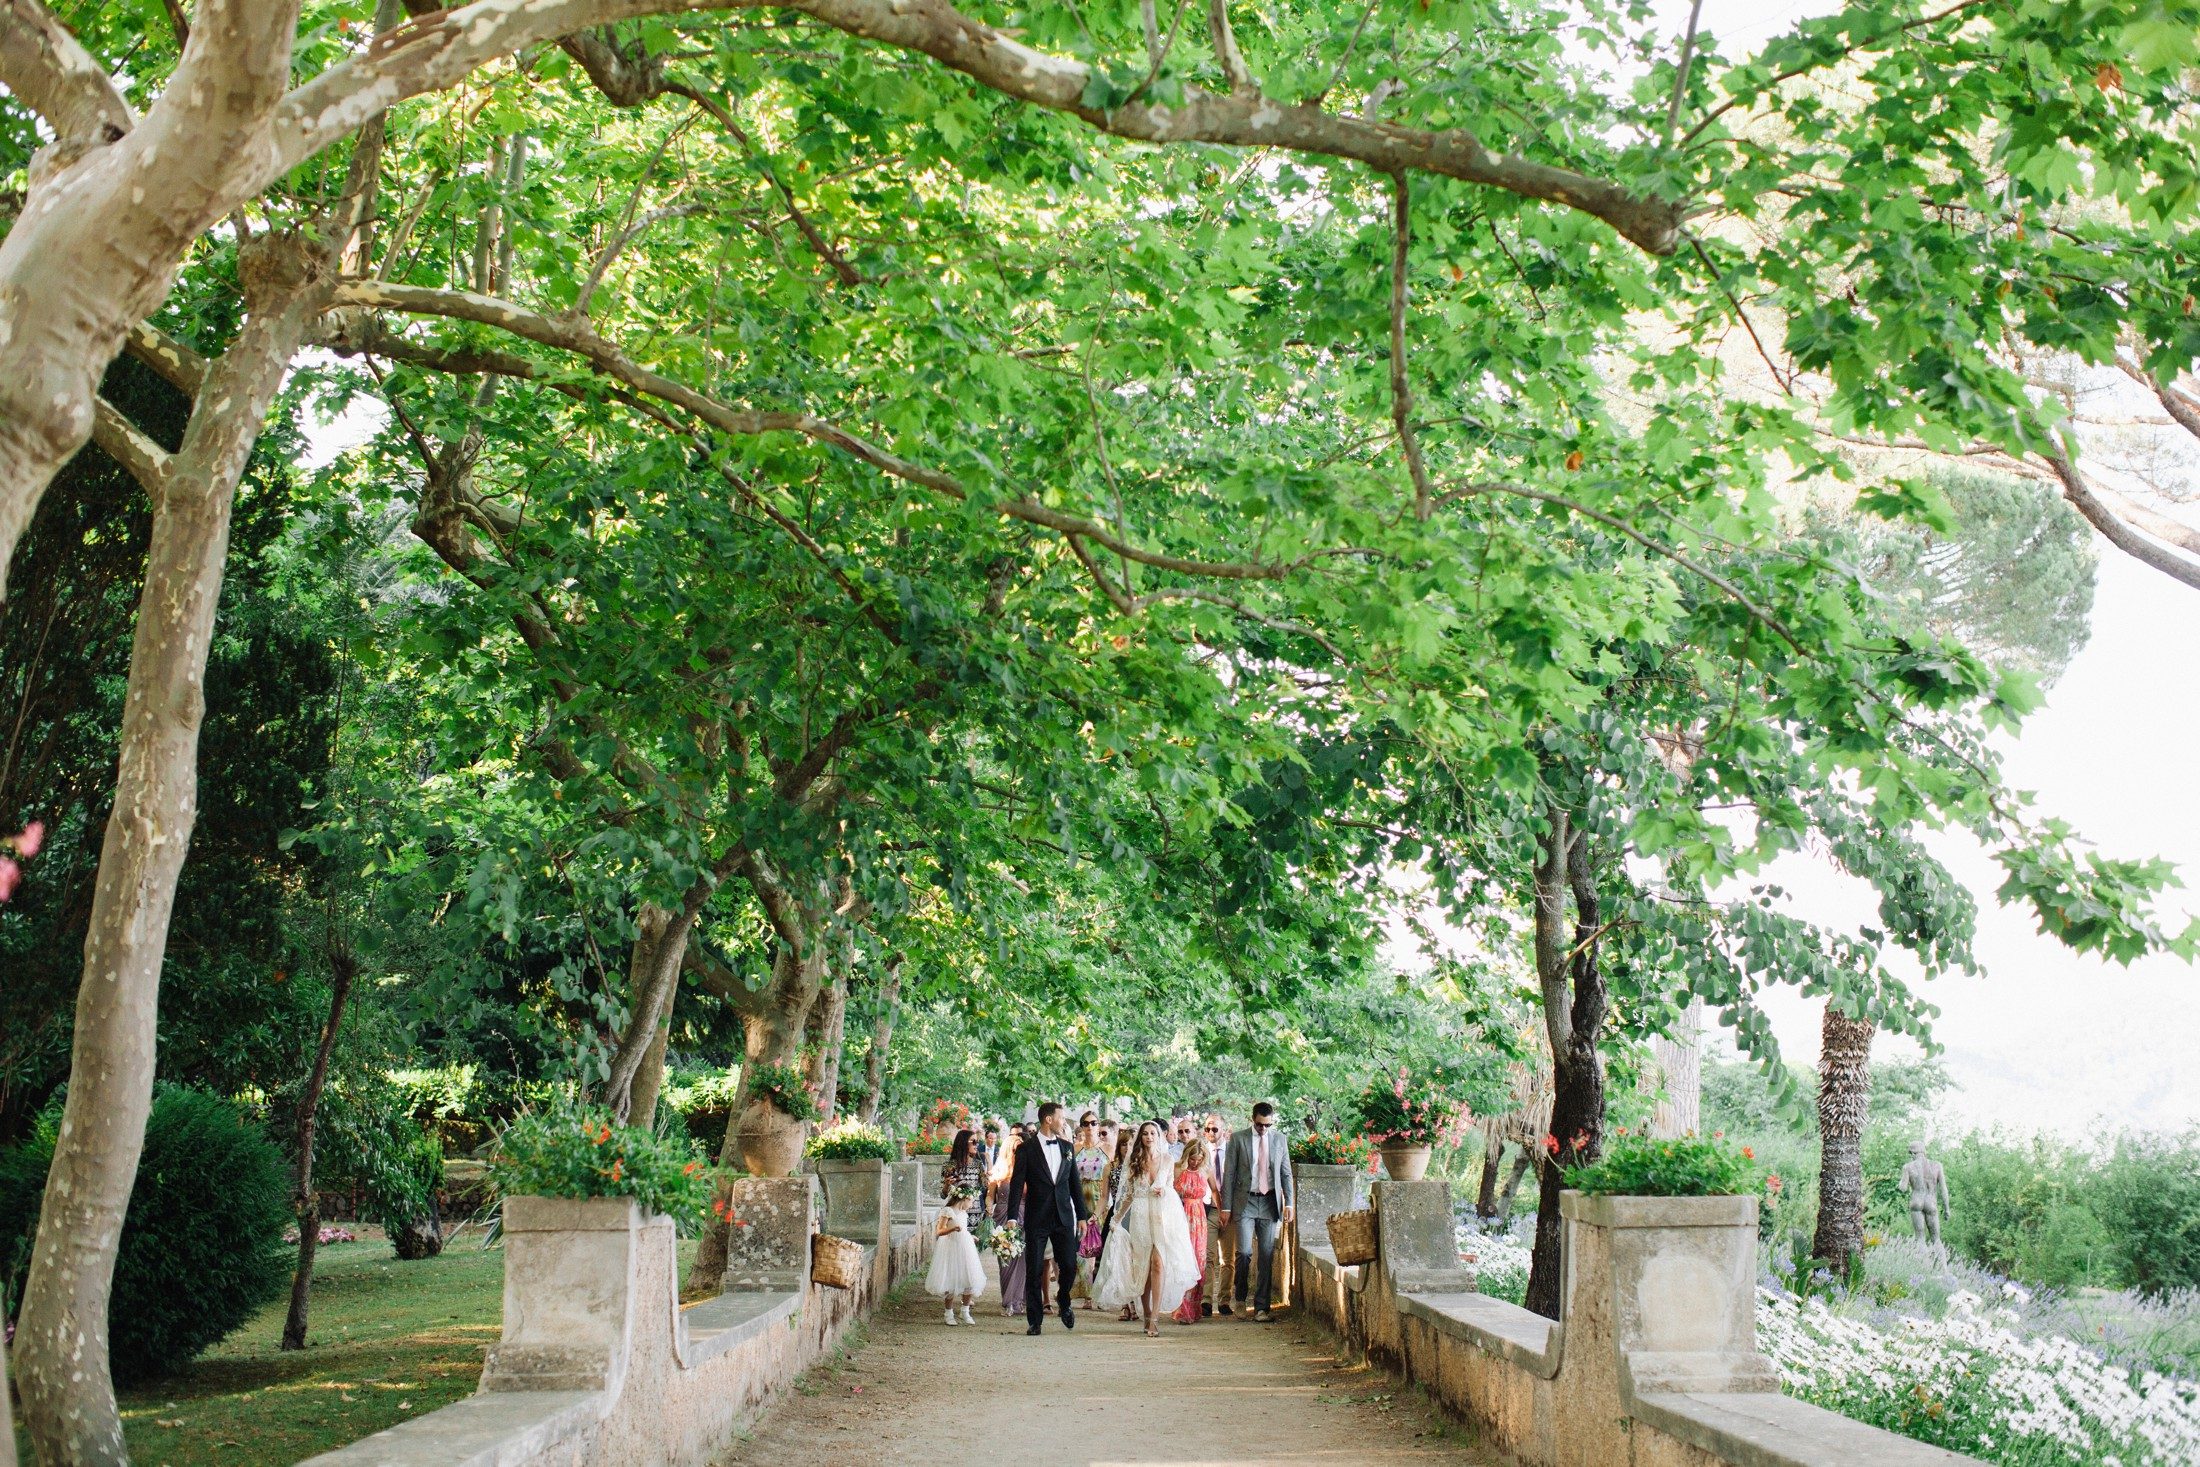 the bride and the groom walk through villa cimbrone gardens followed by their wedding guests